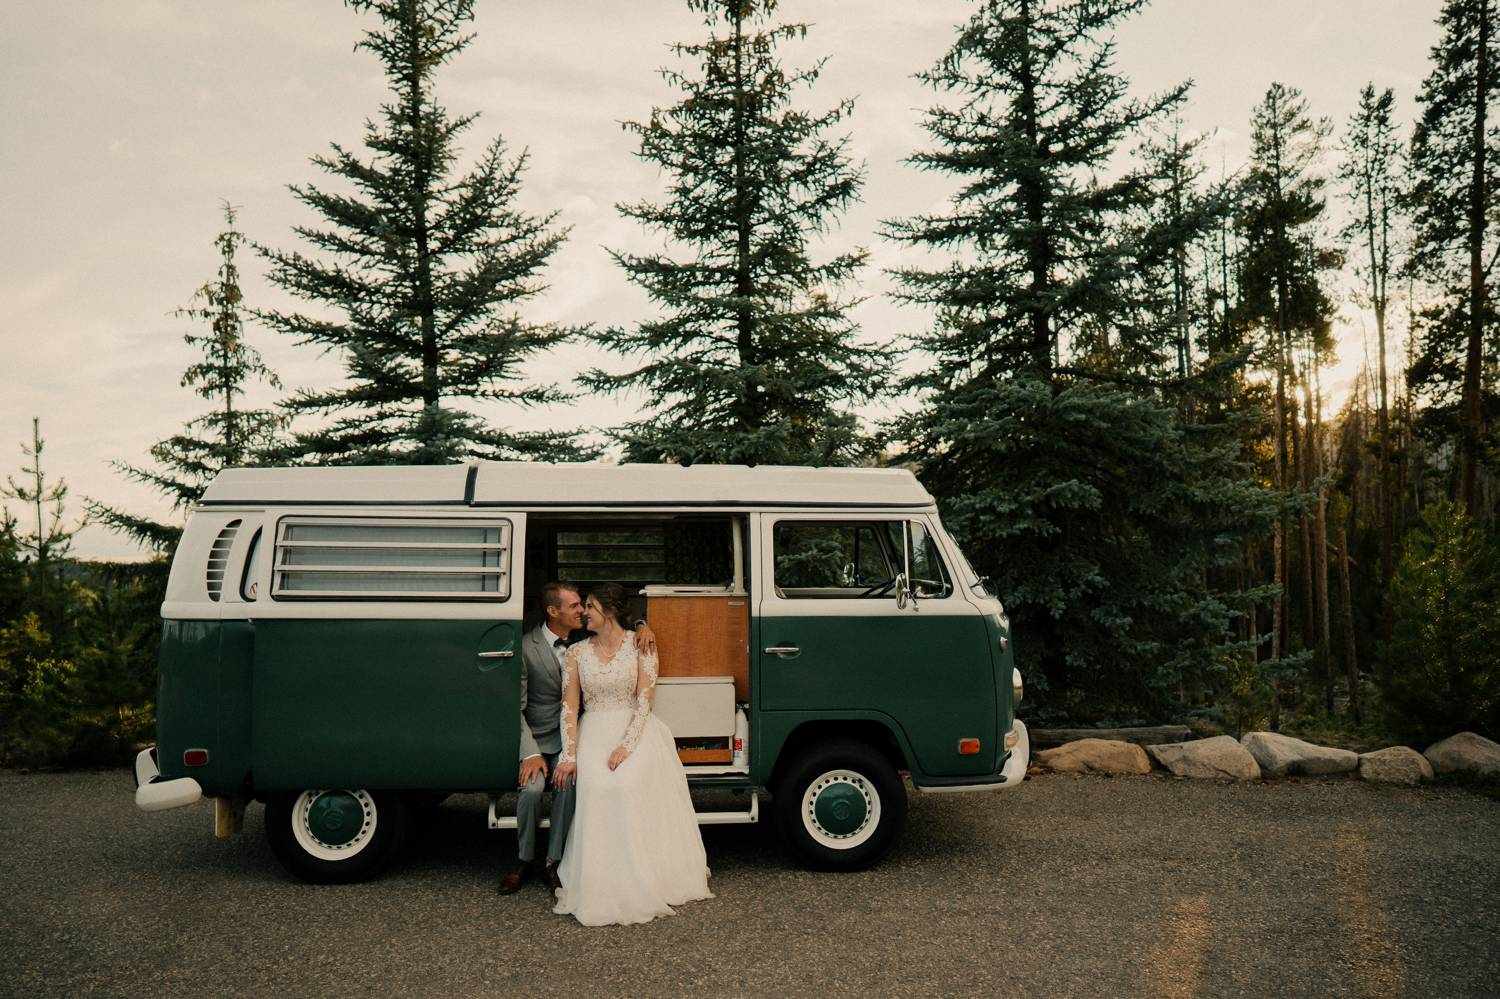 Customer Loyalty: By Nick Sparks, a camper van is parked in front of a stand of evergreens. A bride and groom sit in the open doorway.